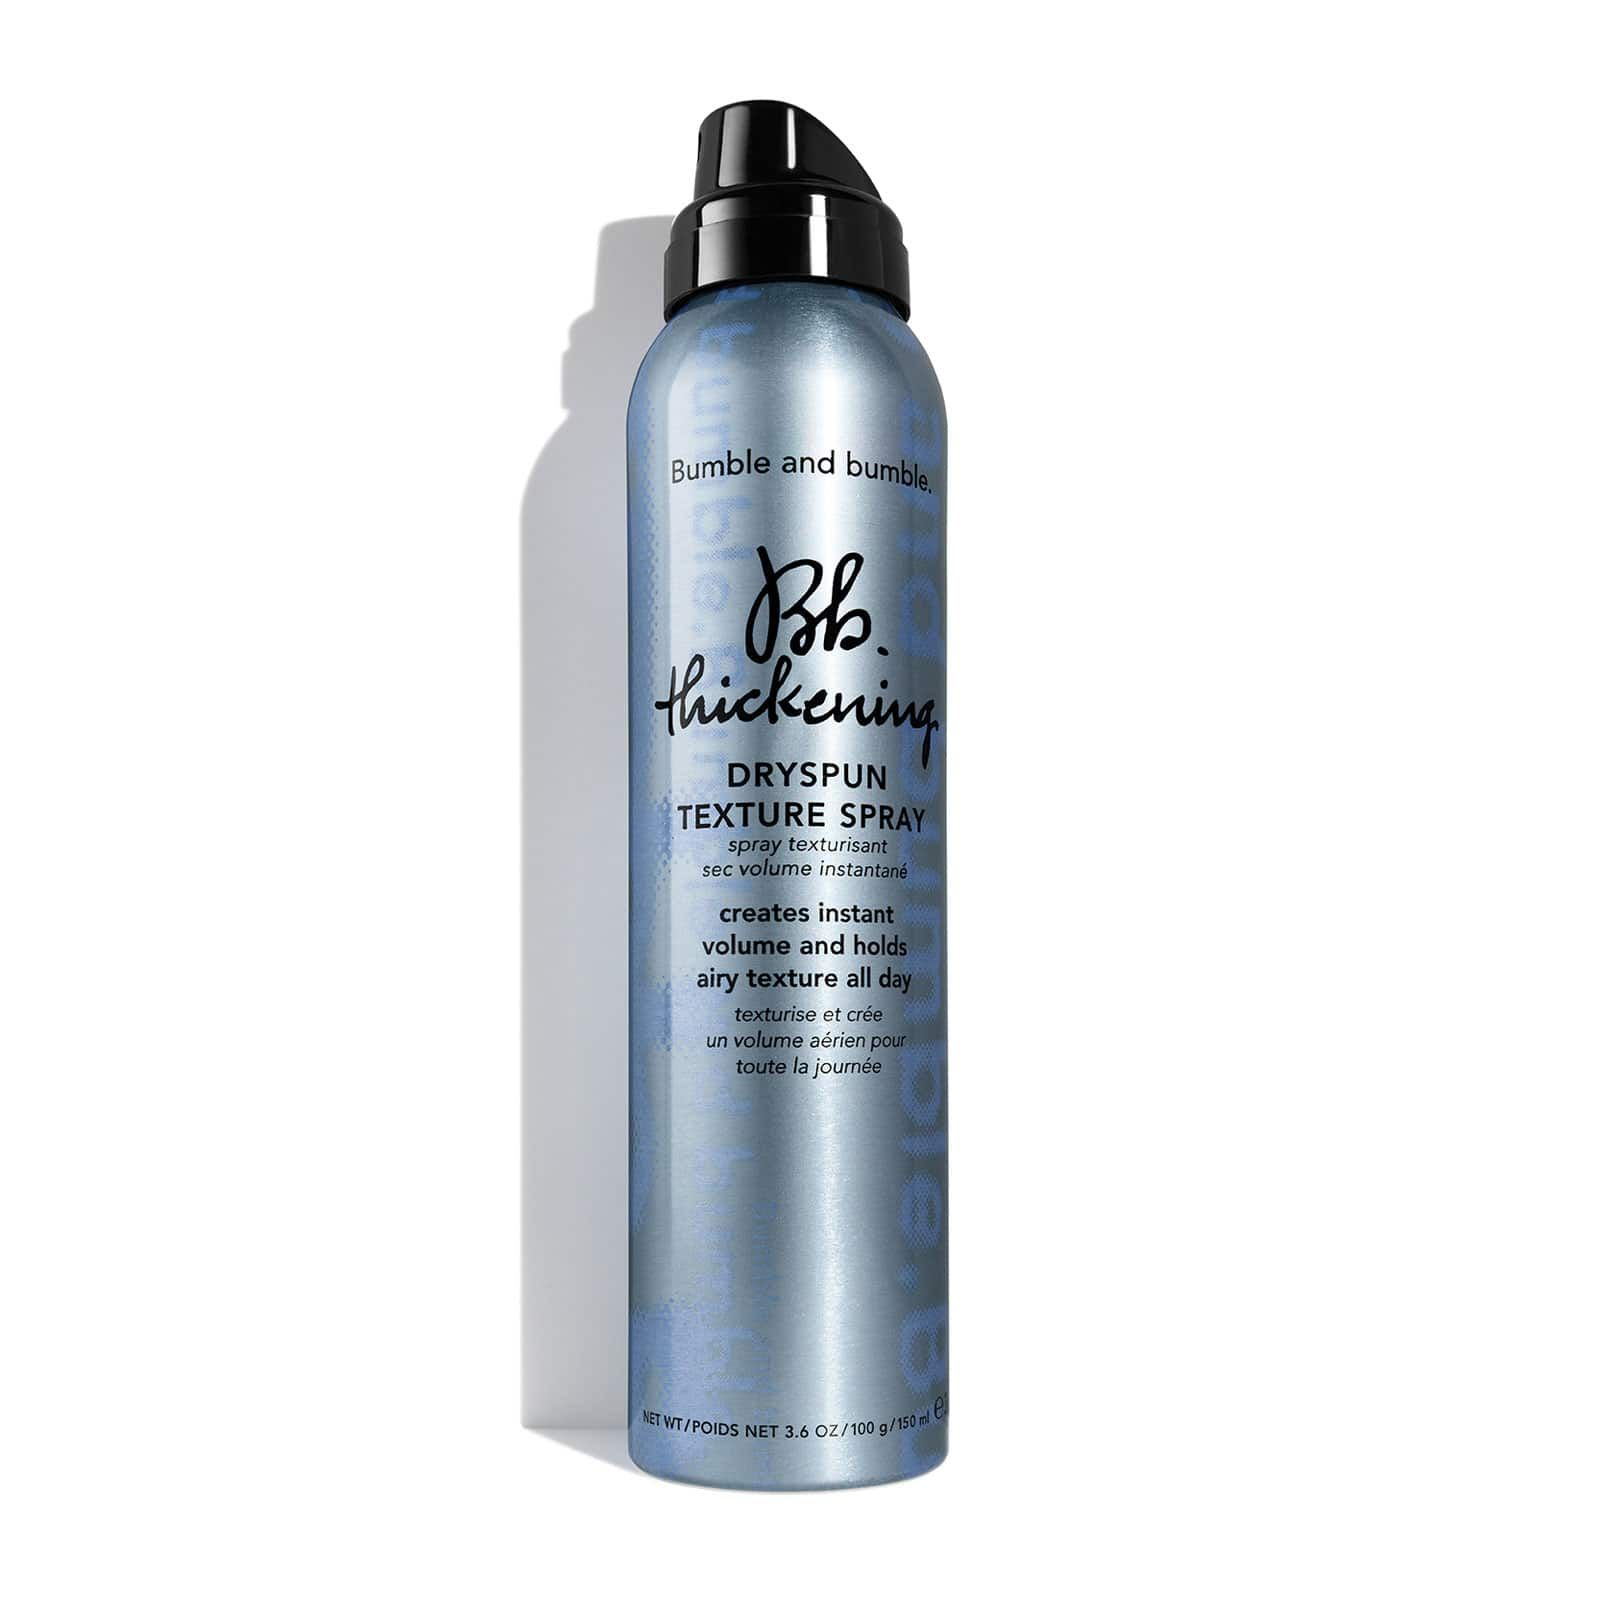 My Celebrity Life – Bumble and Bumble Bb Thickening Dryspun Texture Spray